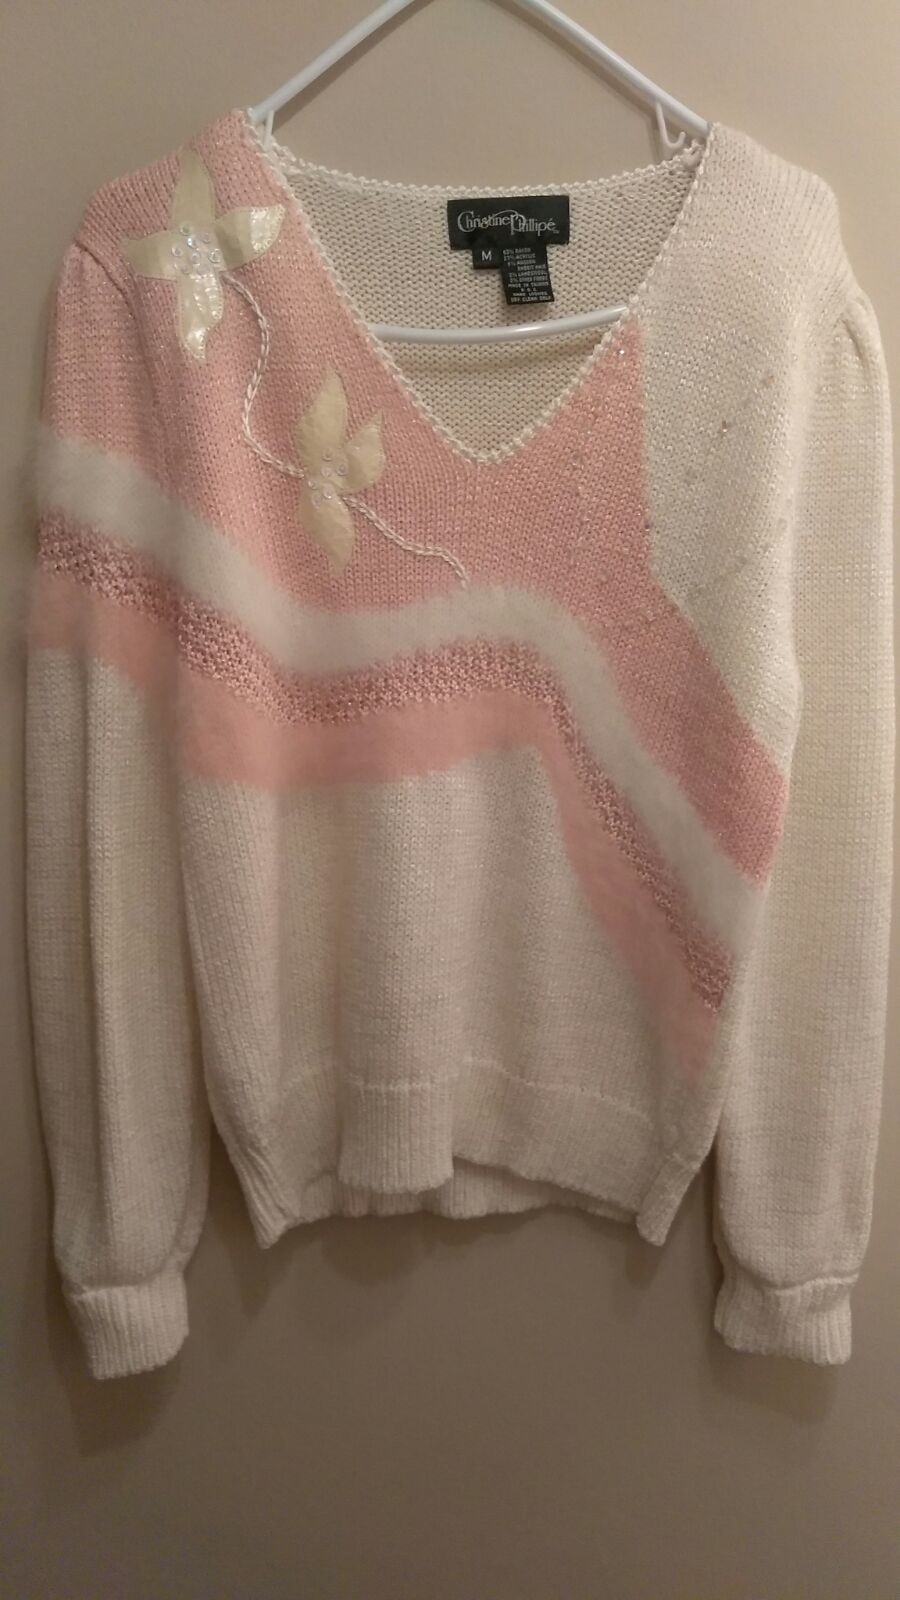 Ivory pink sweater - Mercari: BUY & SELL THINGS YOU LOVE